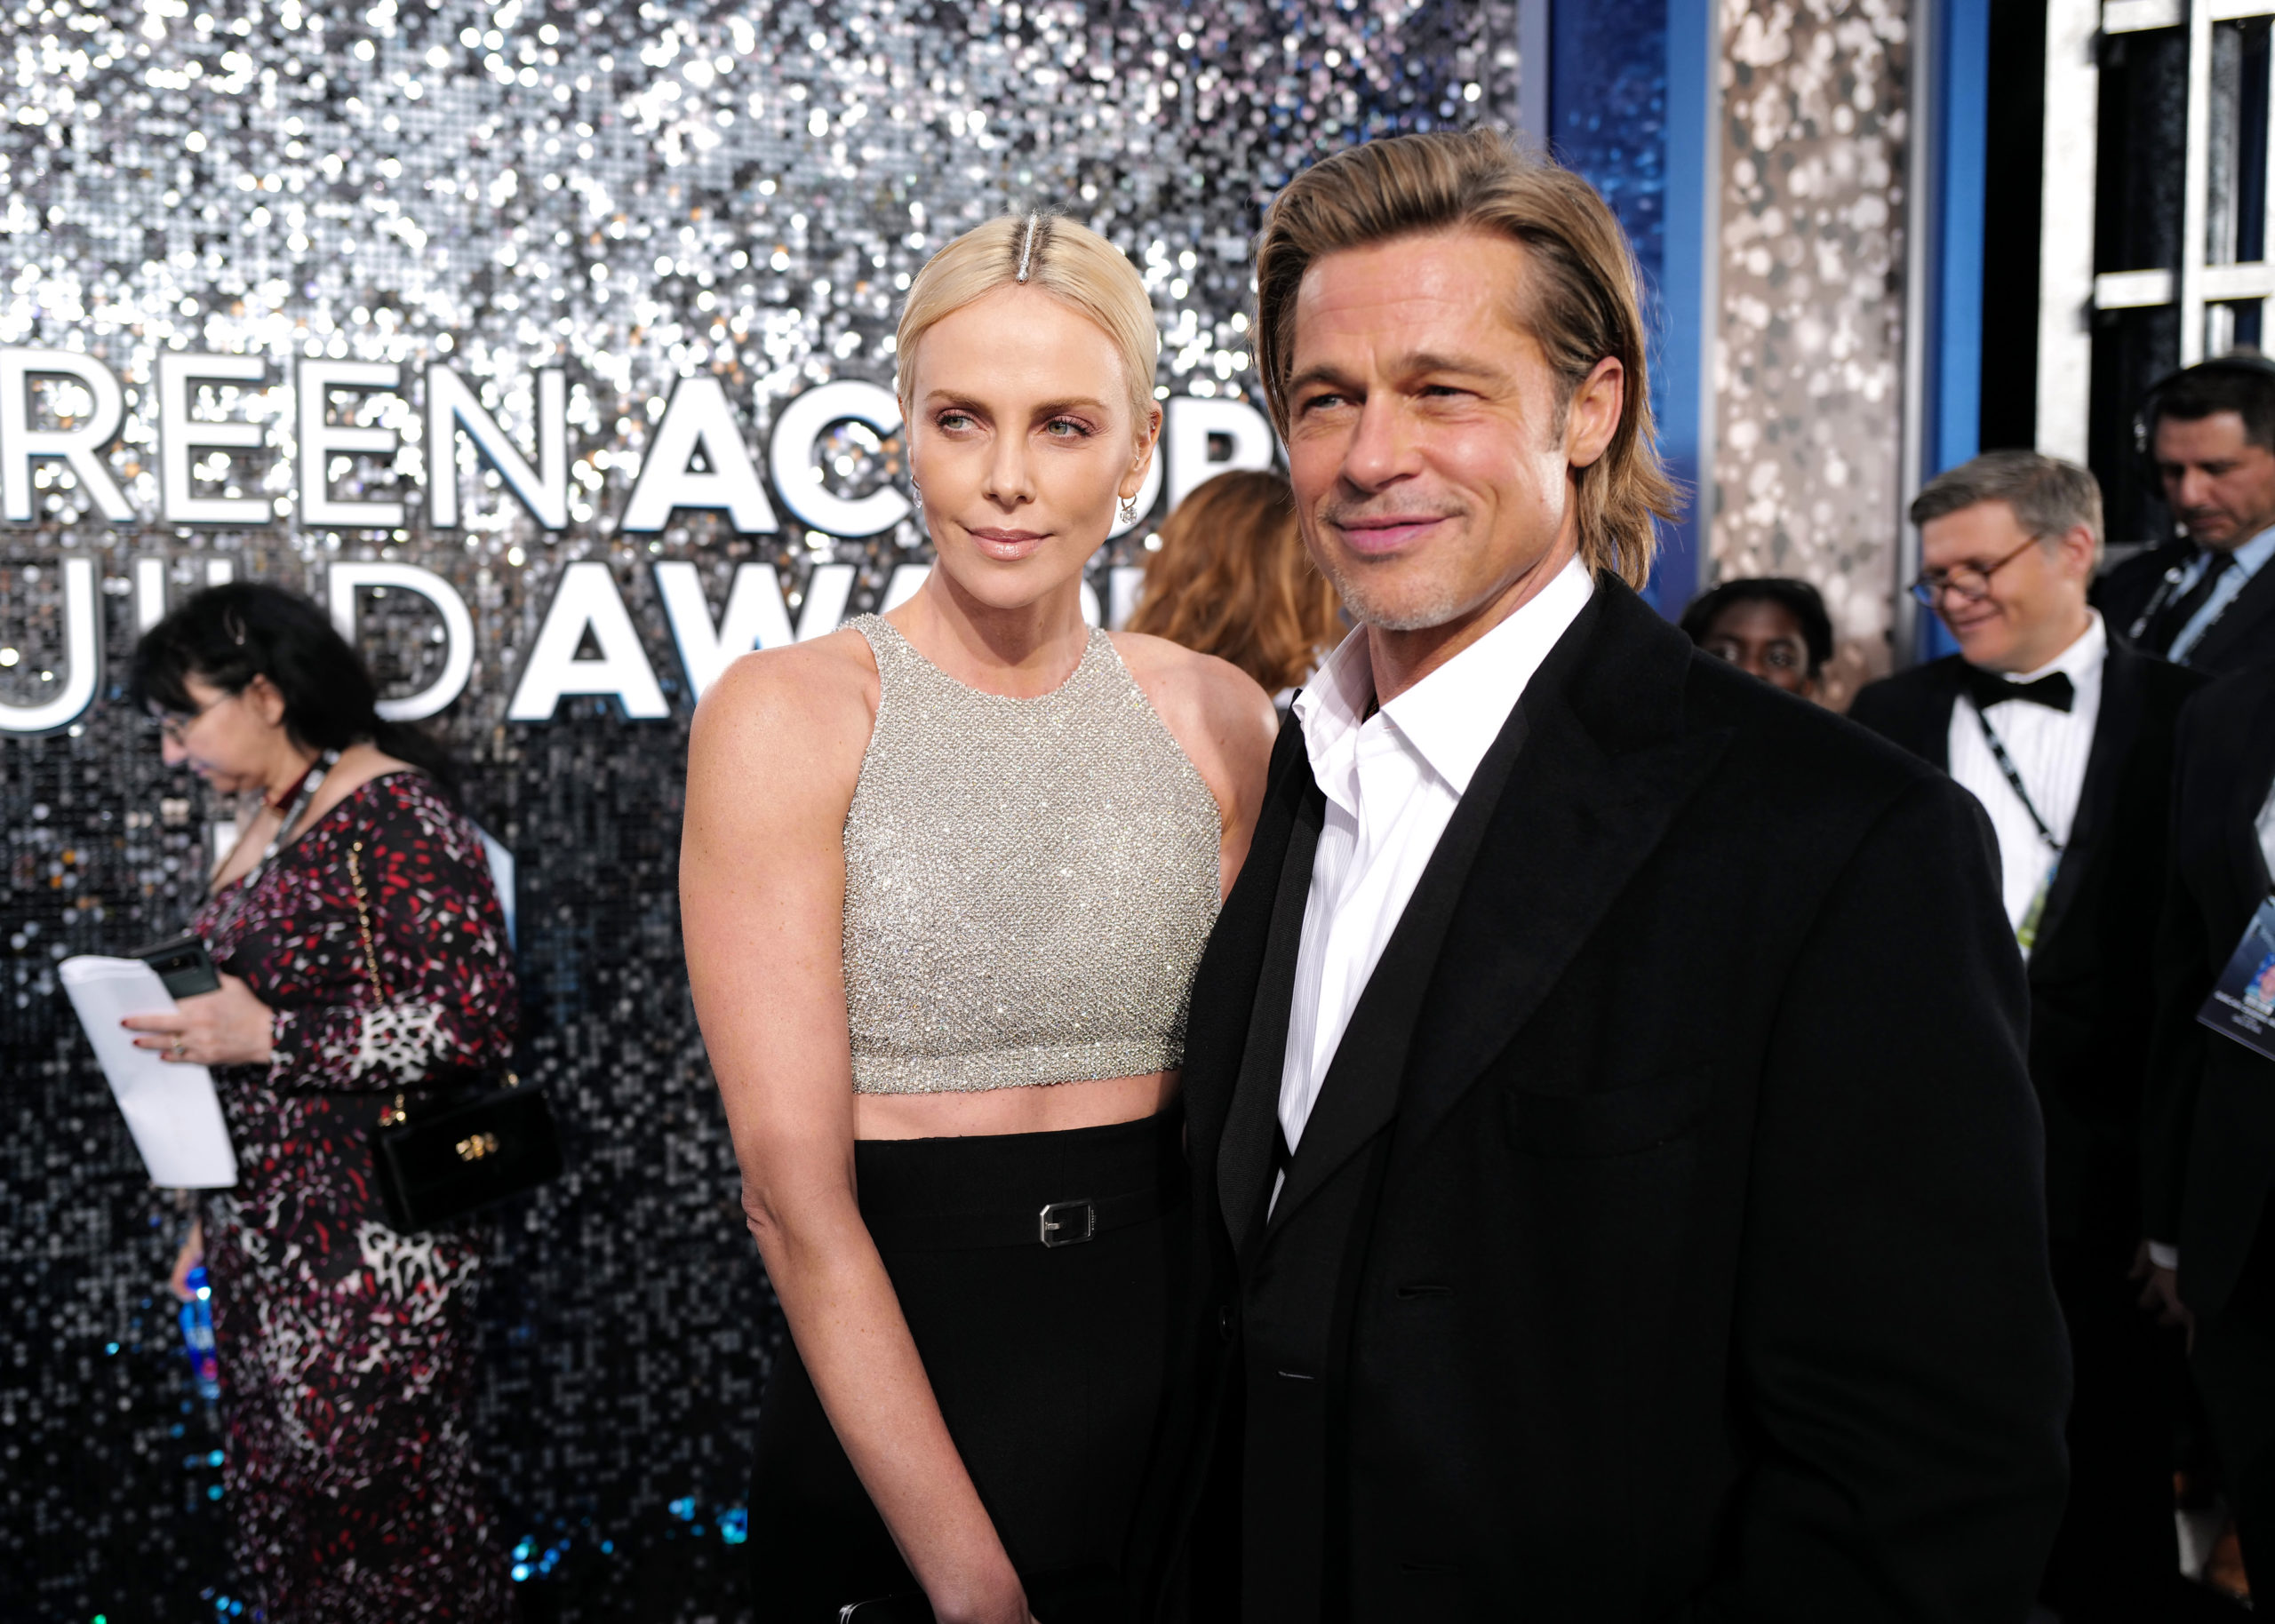 Brad Pitt and Charlize Theron will be the Next Power Couple